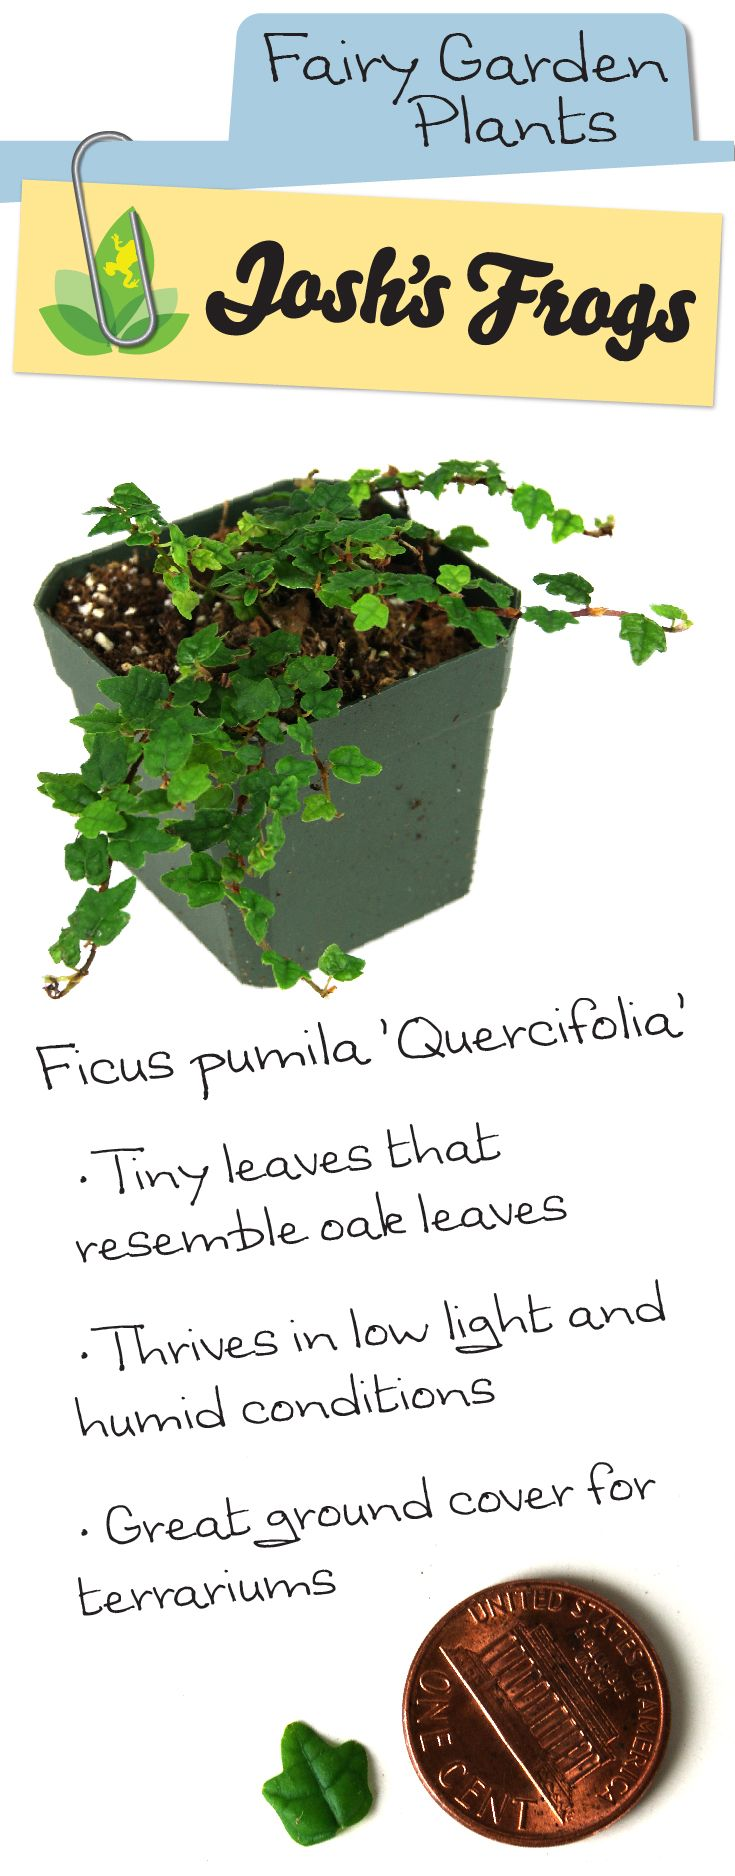 Ficus pumila 'Quercifolia' is a great plant for fairy gardens or terrariums. Buy at Josh's Frogs for just $4.99!